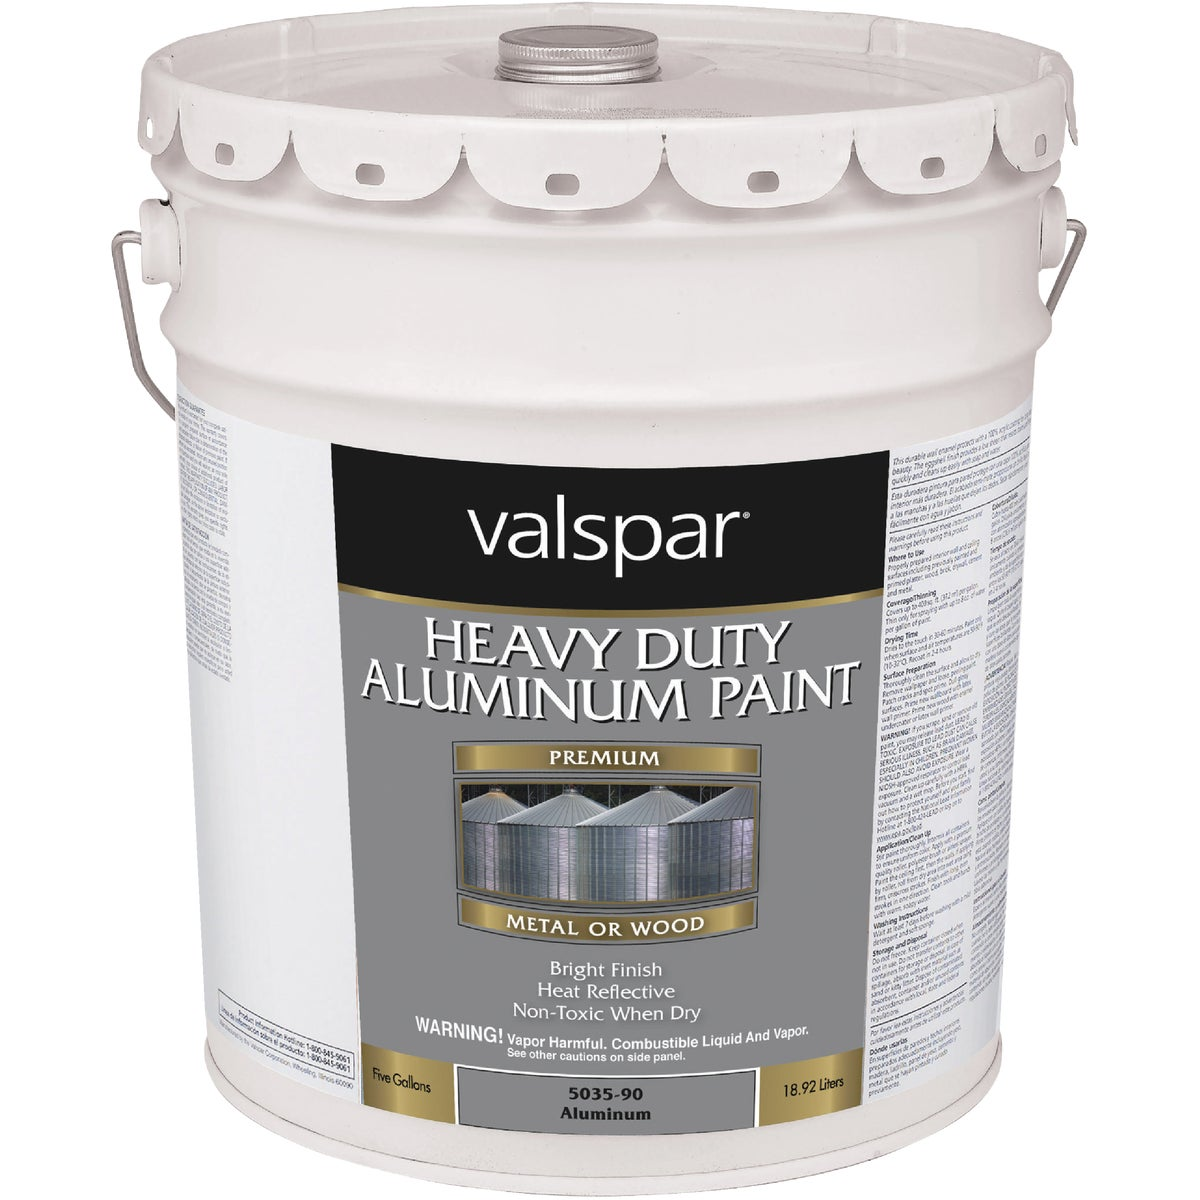 HD ALUMINUM PAINT - 018.5035-90.008 by Valspar Corp